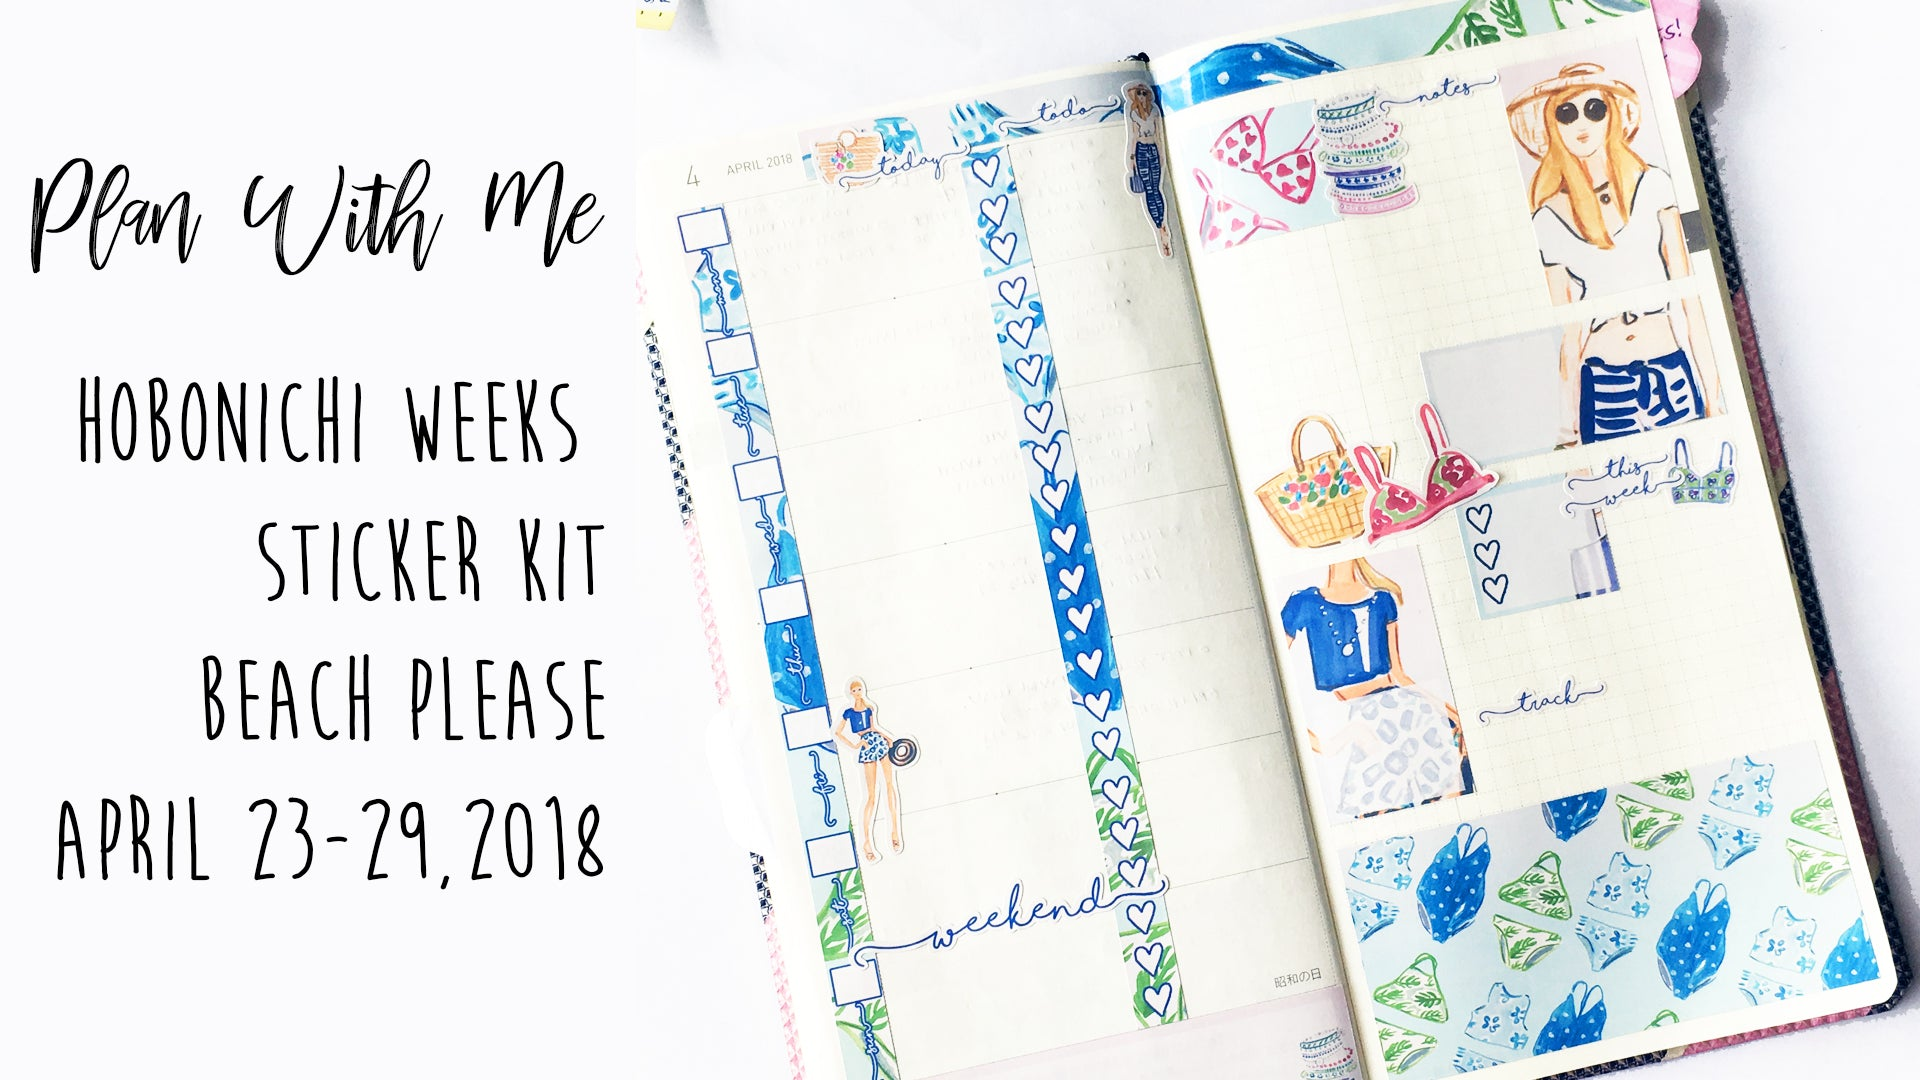 Plan With Me | Hobonichi Weeks April 23-29, 2018